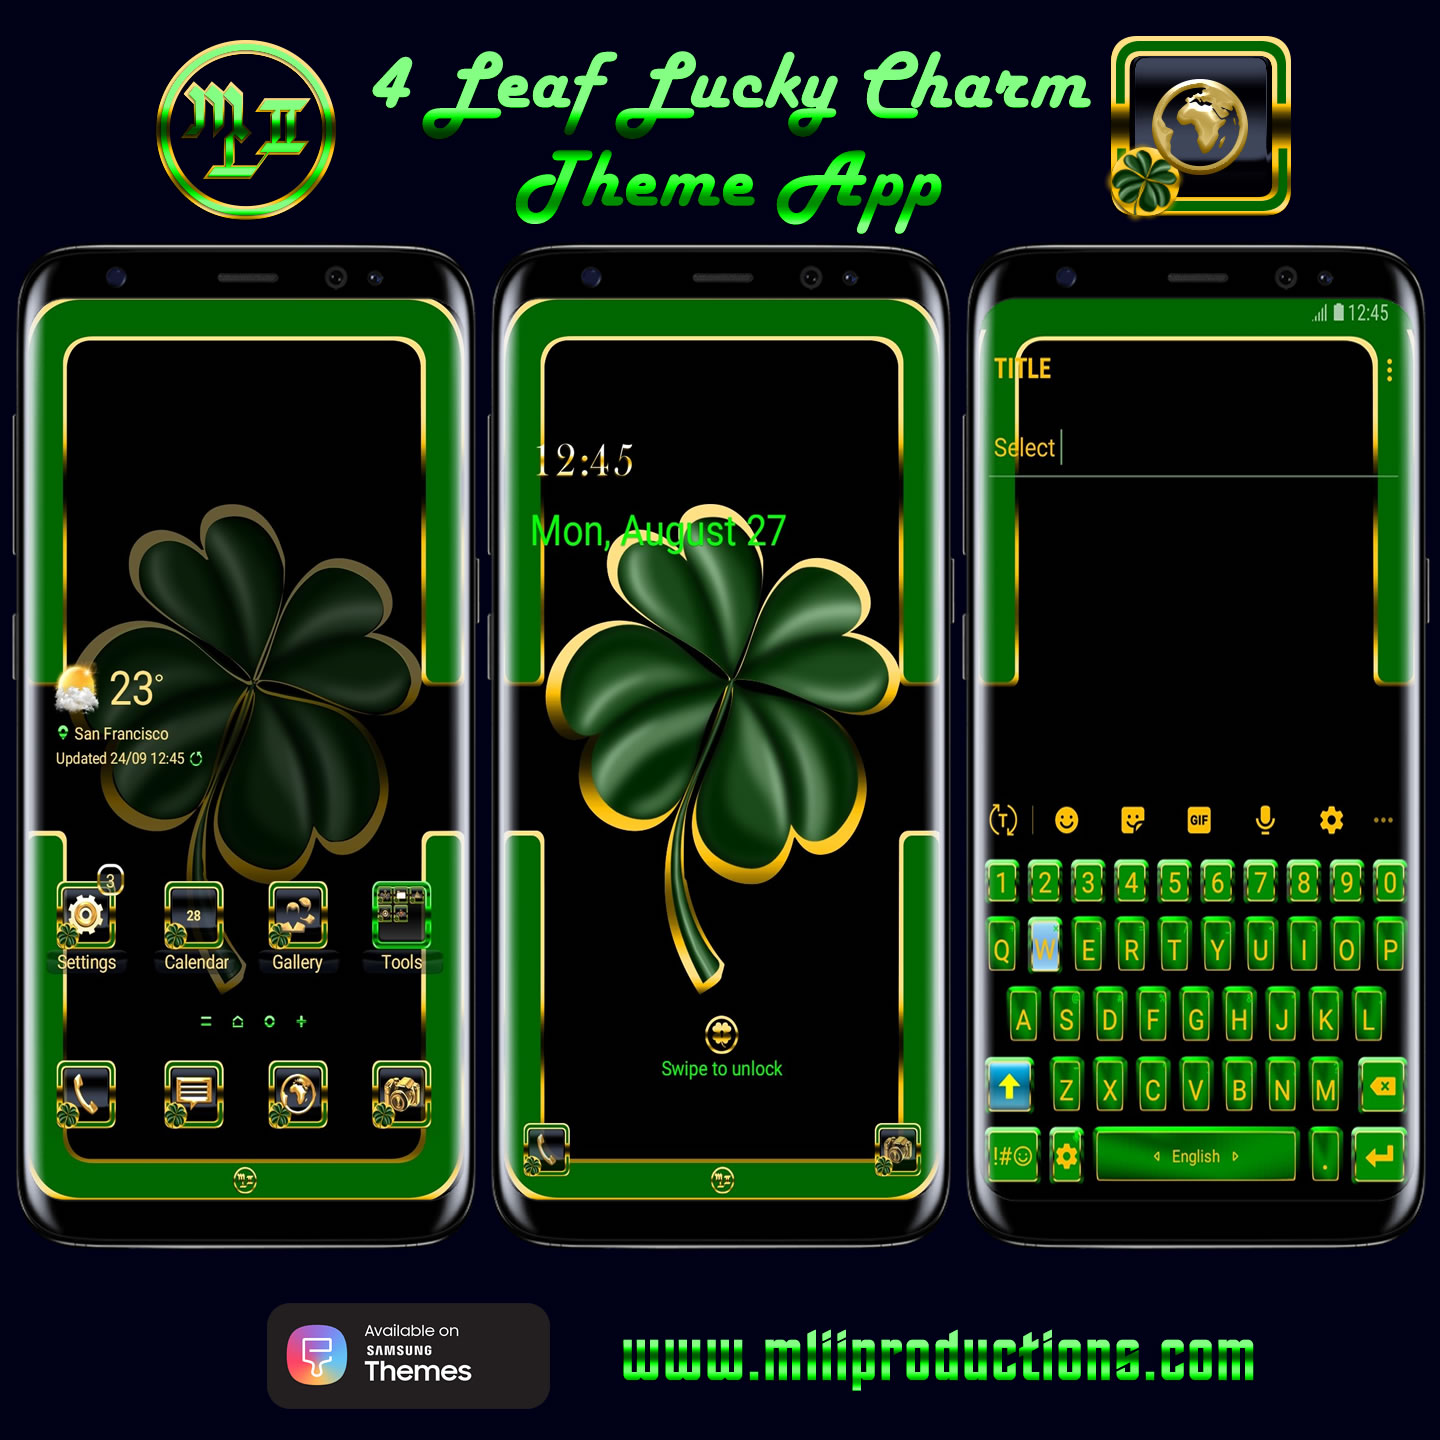 4 Leaf Lucky Charm Theme App